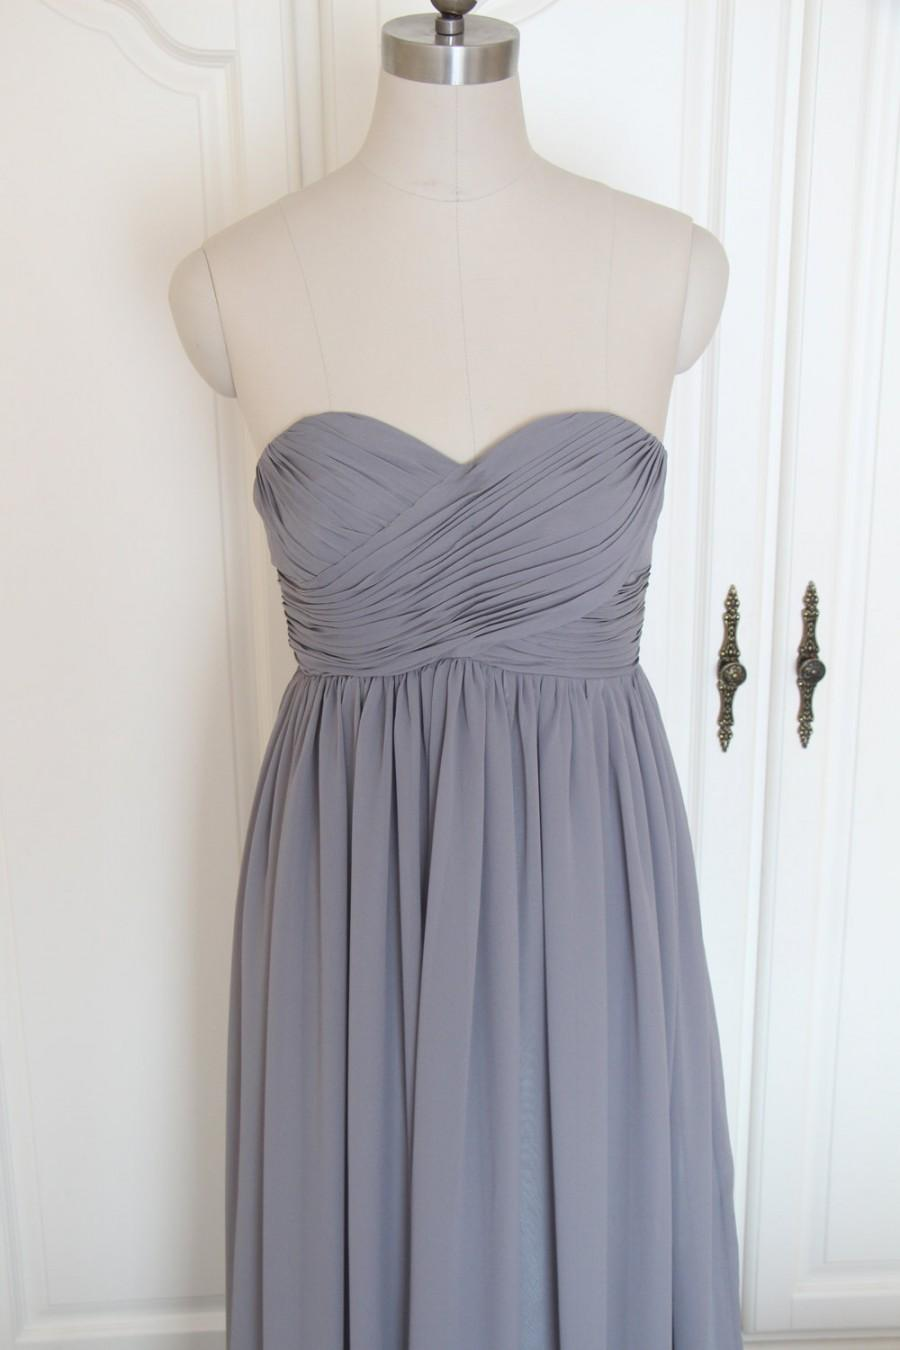 Mariage - Gray Sweetheart Bridesmaid Dress Long Grey Strapless Chiffon Bridesmaid Dress-Custom Dress